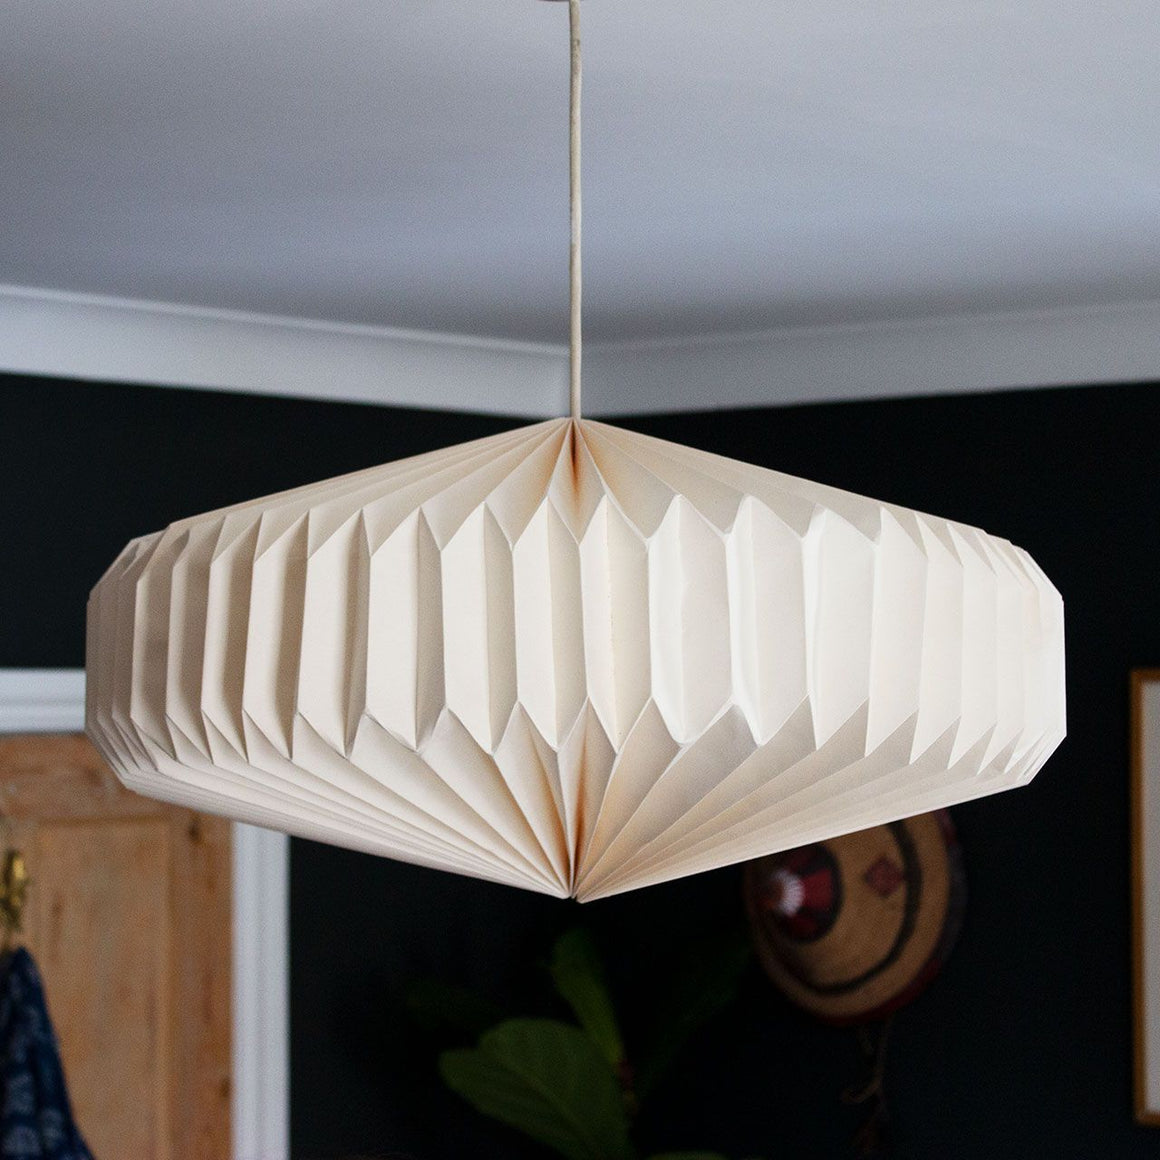 Indian Recycled Paper Saucer Light Shade 'Natural Calico'